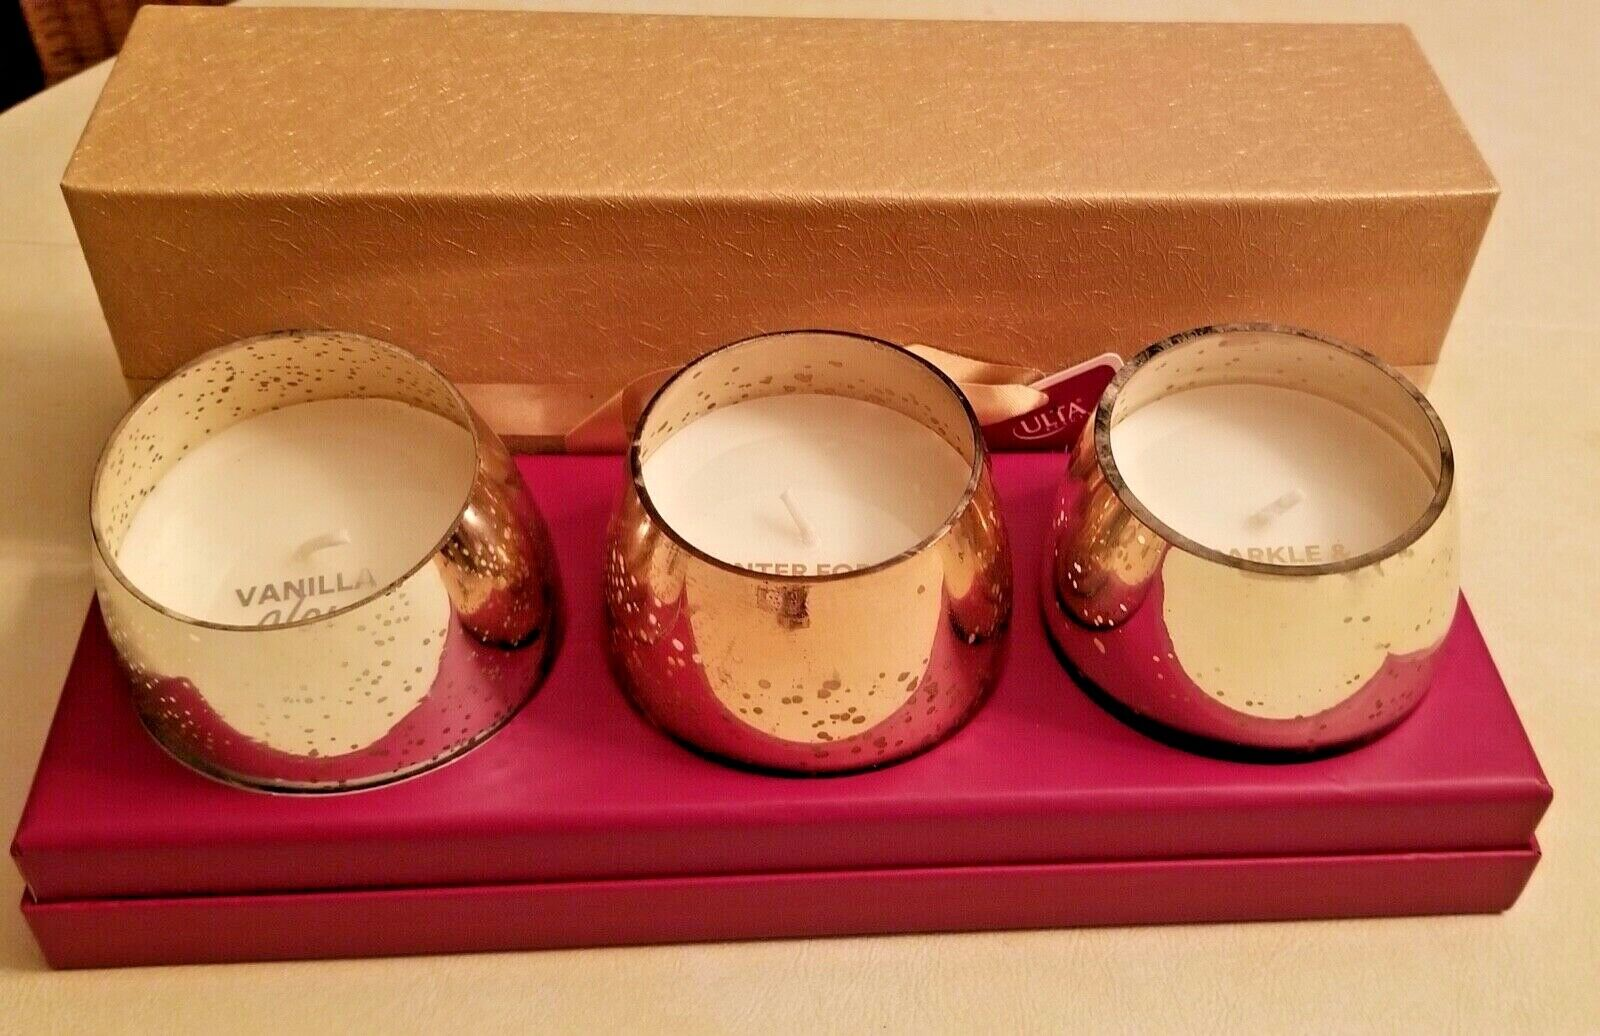 Ulta Beauty 3-Piece Holiday Candle Set Glow, Glam, Spice Stemless Glasses - $10.00